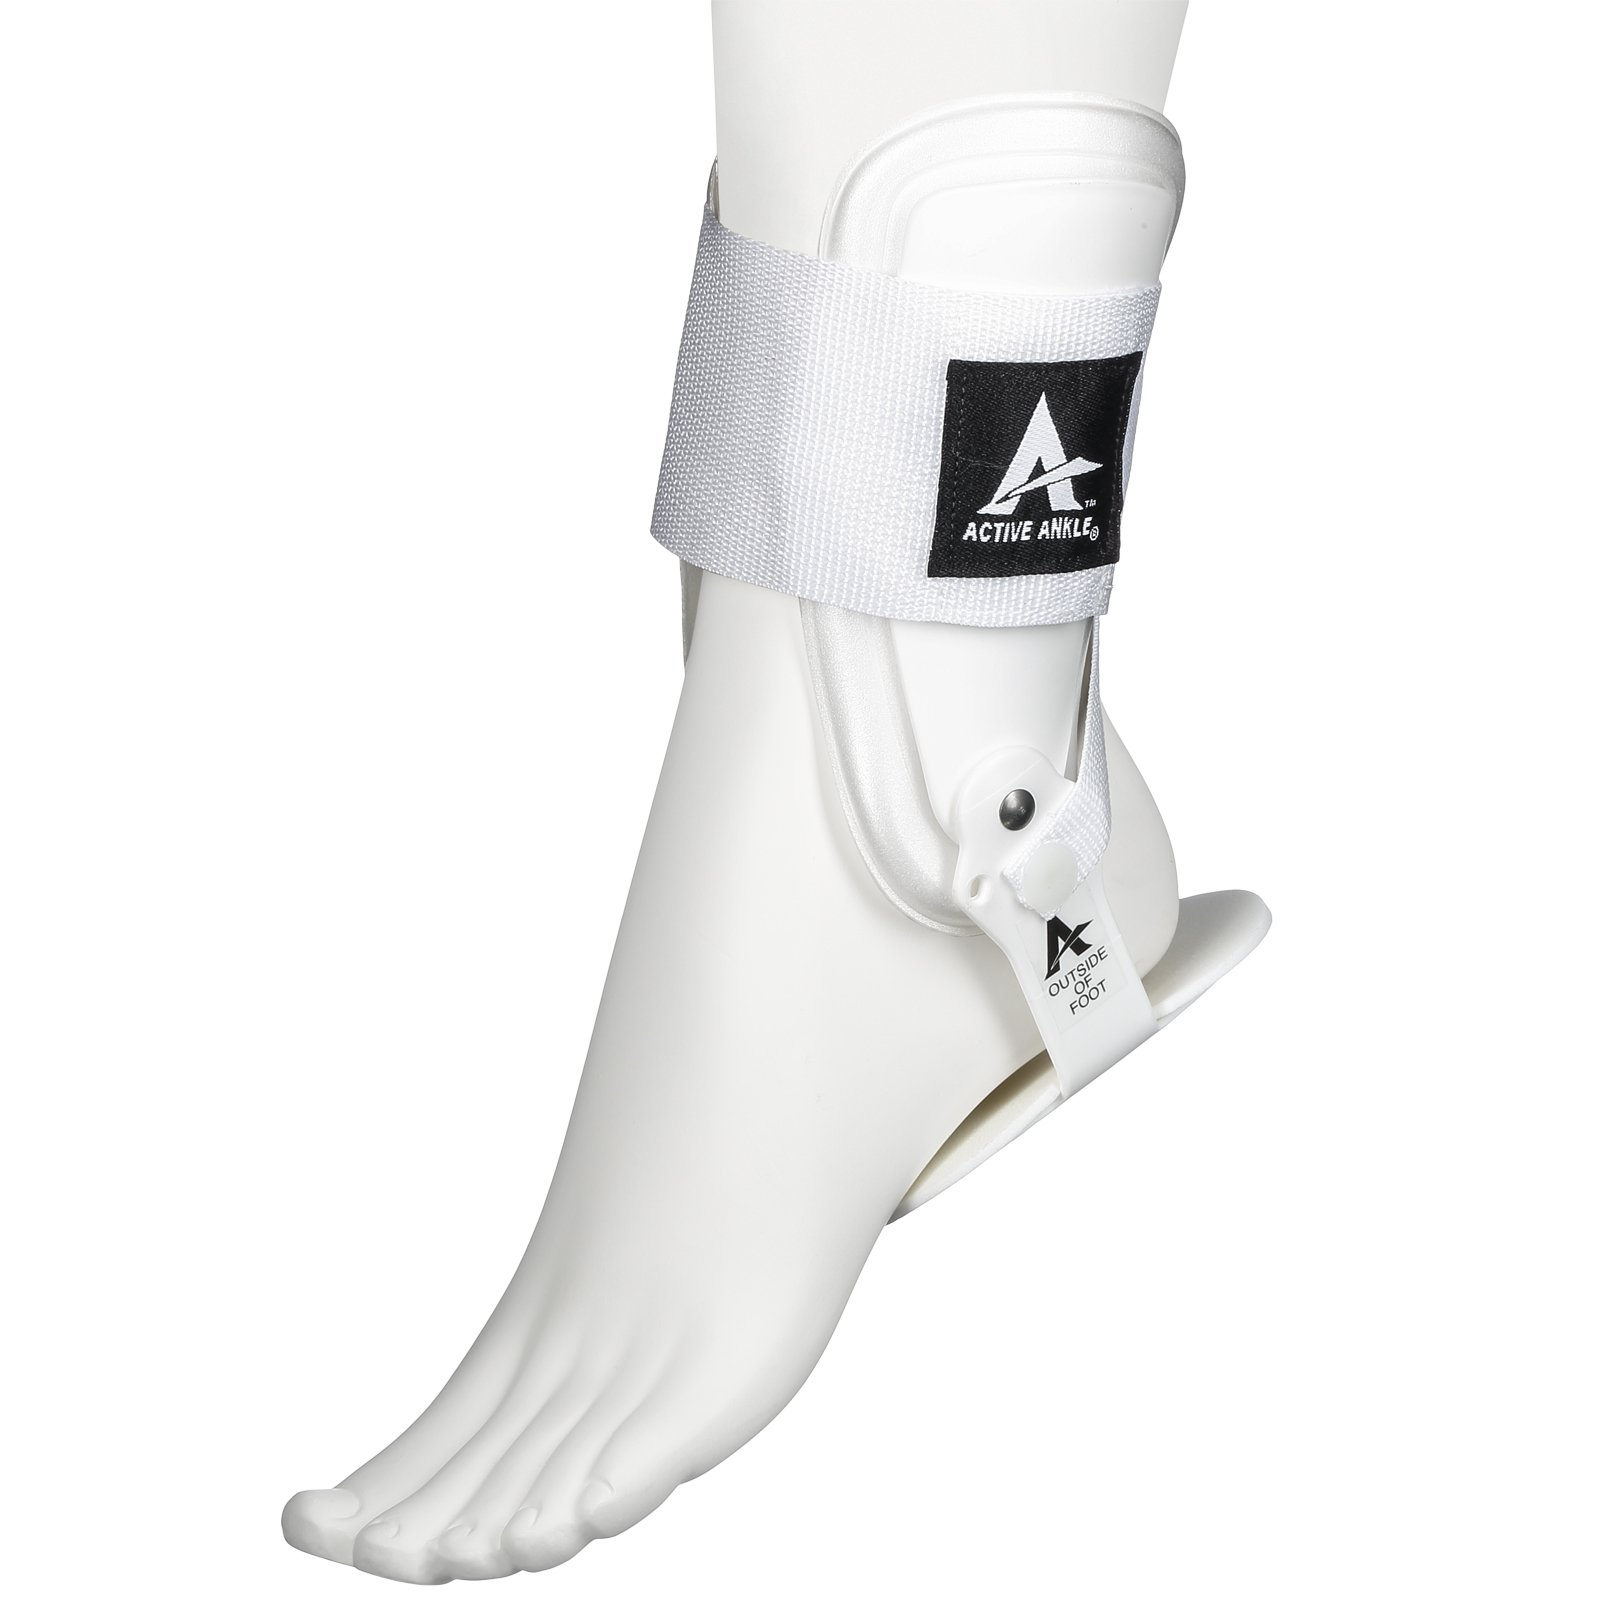 Cramer® Active Ankle T2 Small White (EA) by Cramer